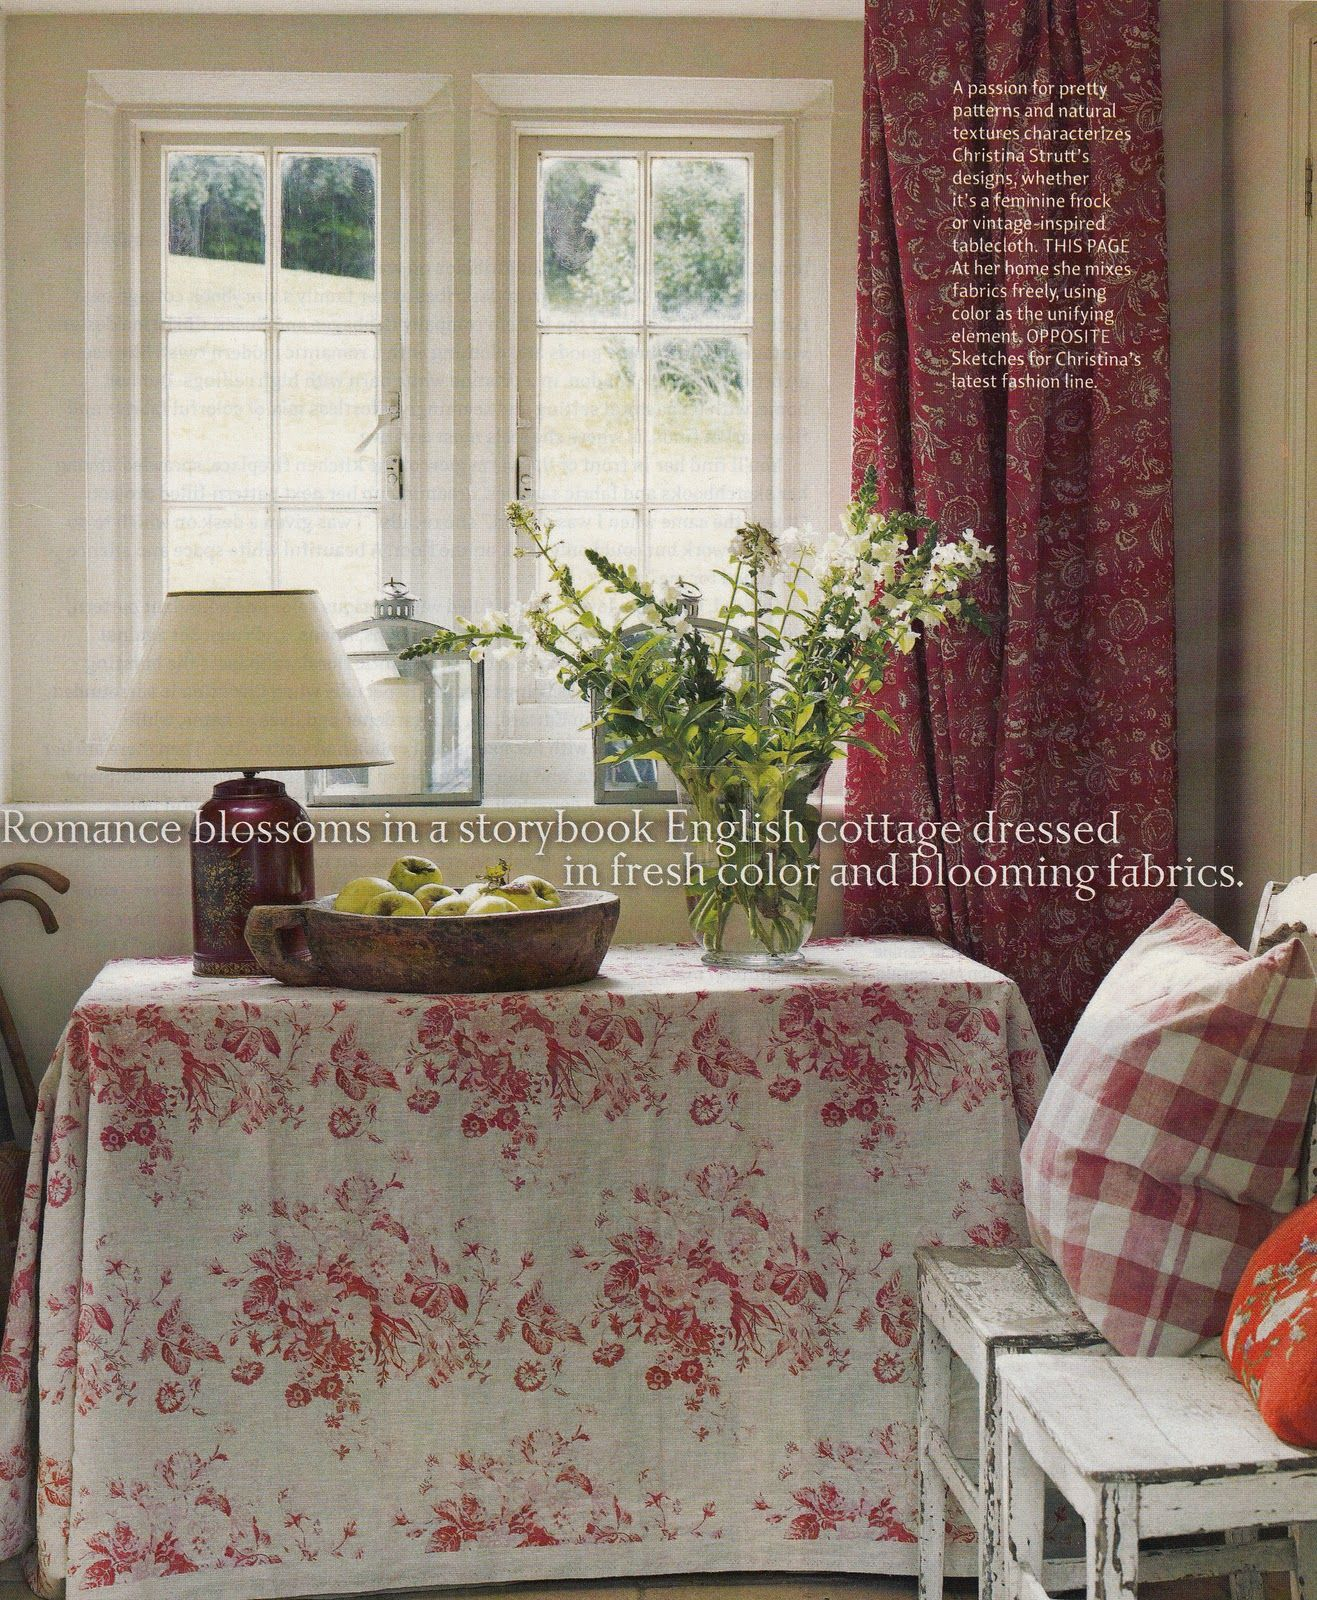 Hydrangea Hill Cottage French Country Decorating: Hydrangea Hill Cottage: The Home And Designs Of Christina